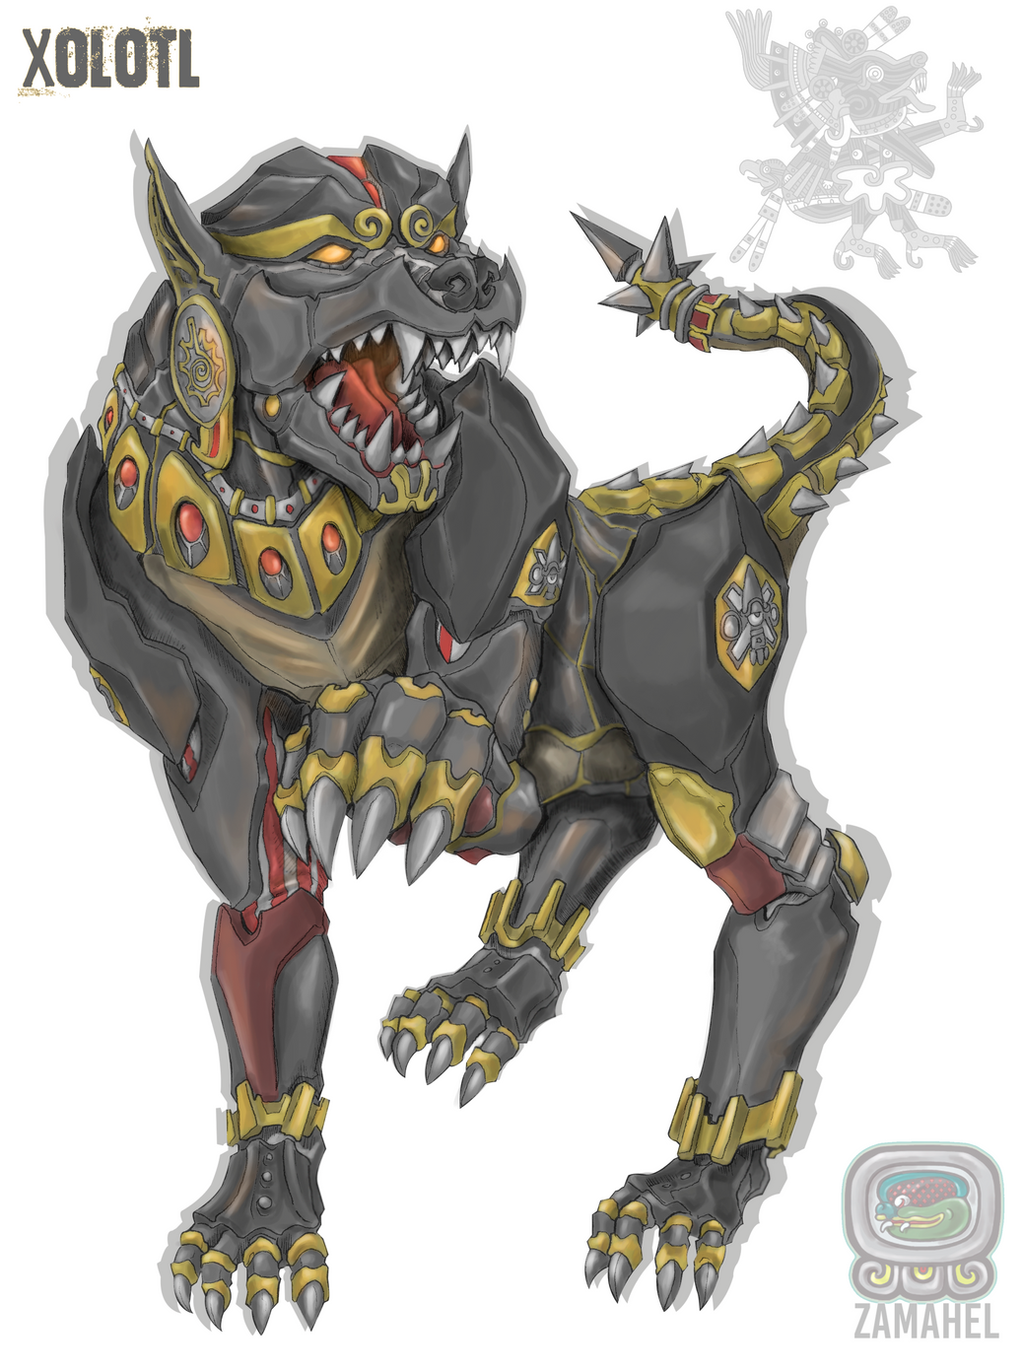 xolotl by guiler717 on deviantart